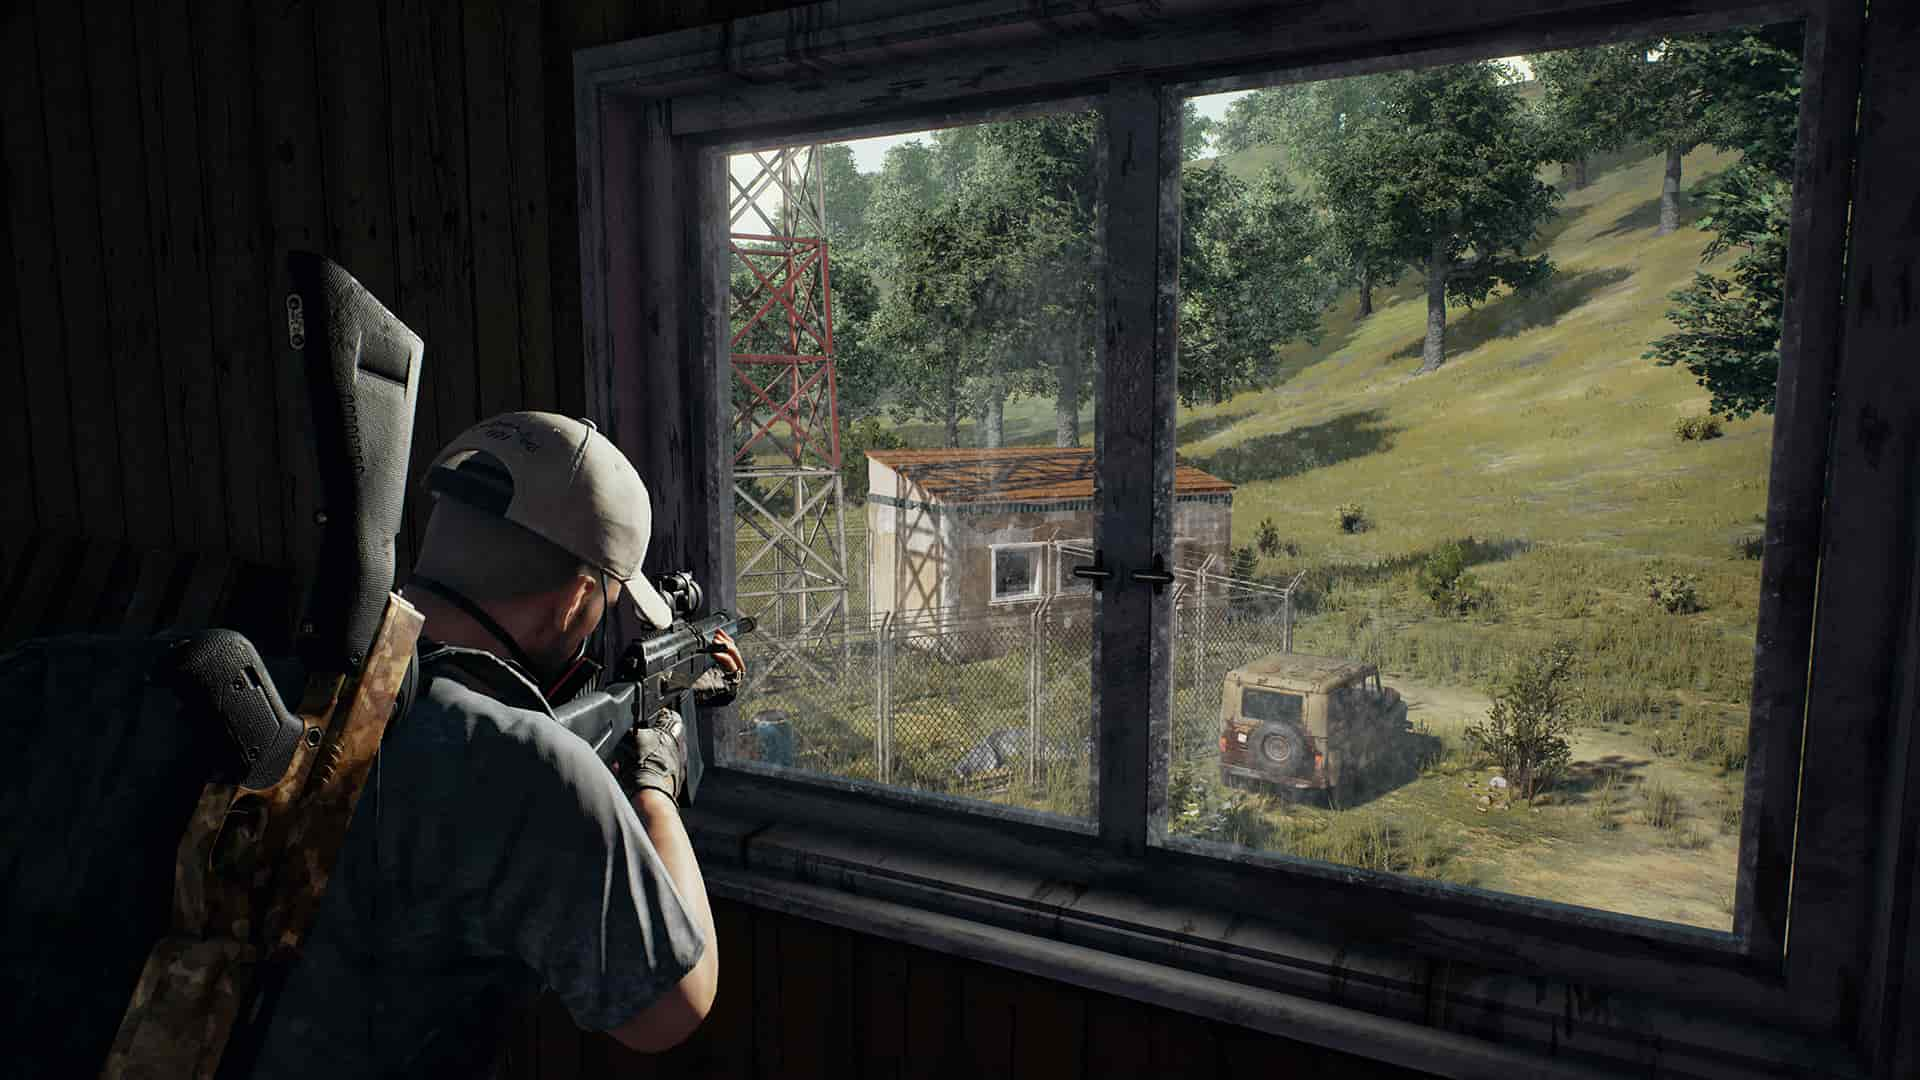 15 PUBG Cheaters Arrested for Creating Hacking Programs